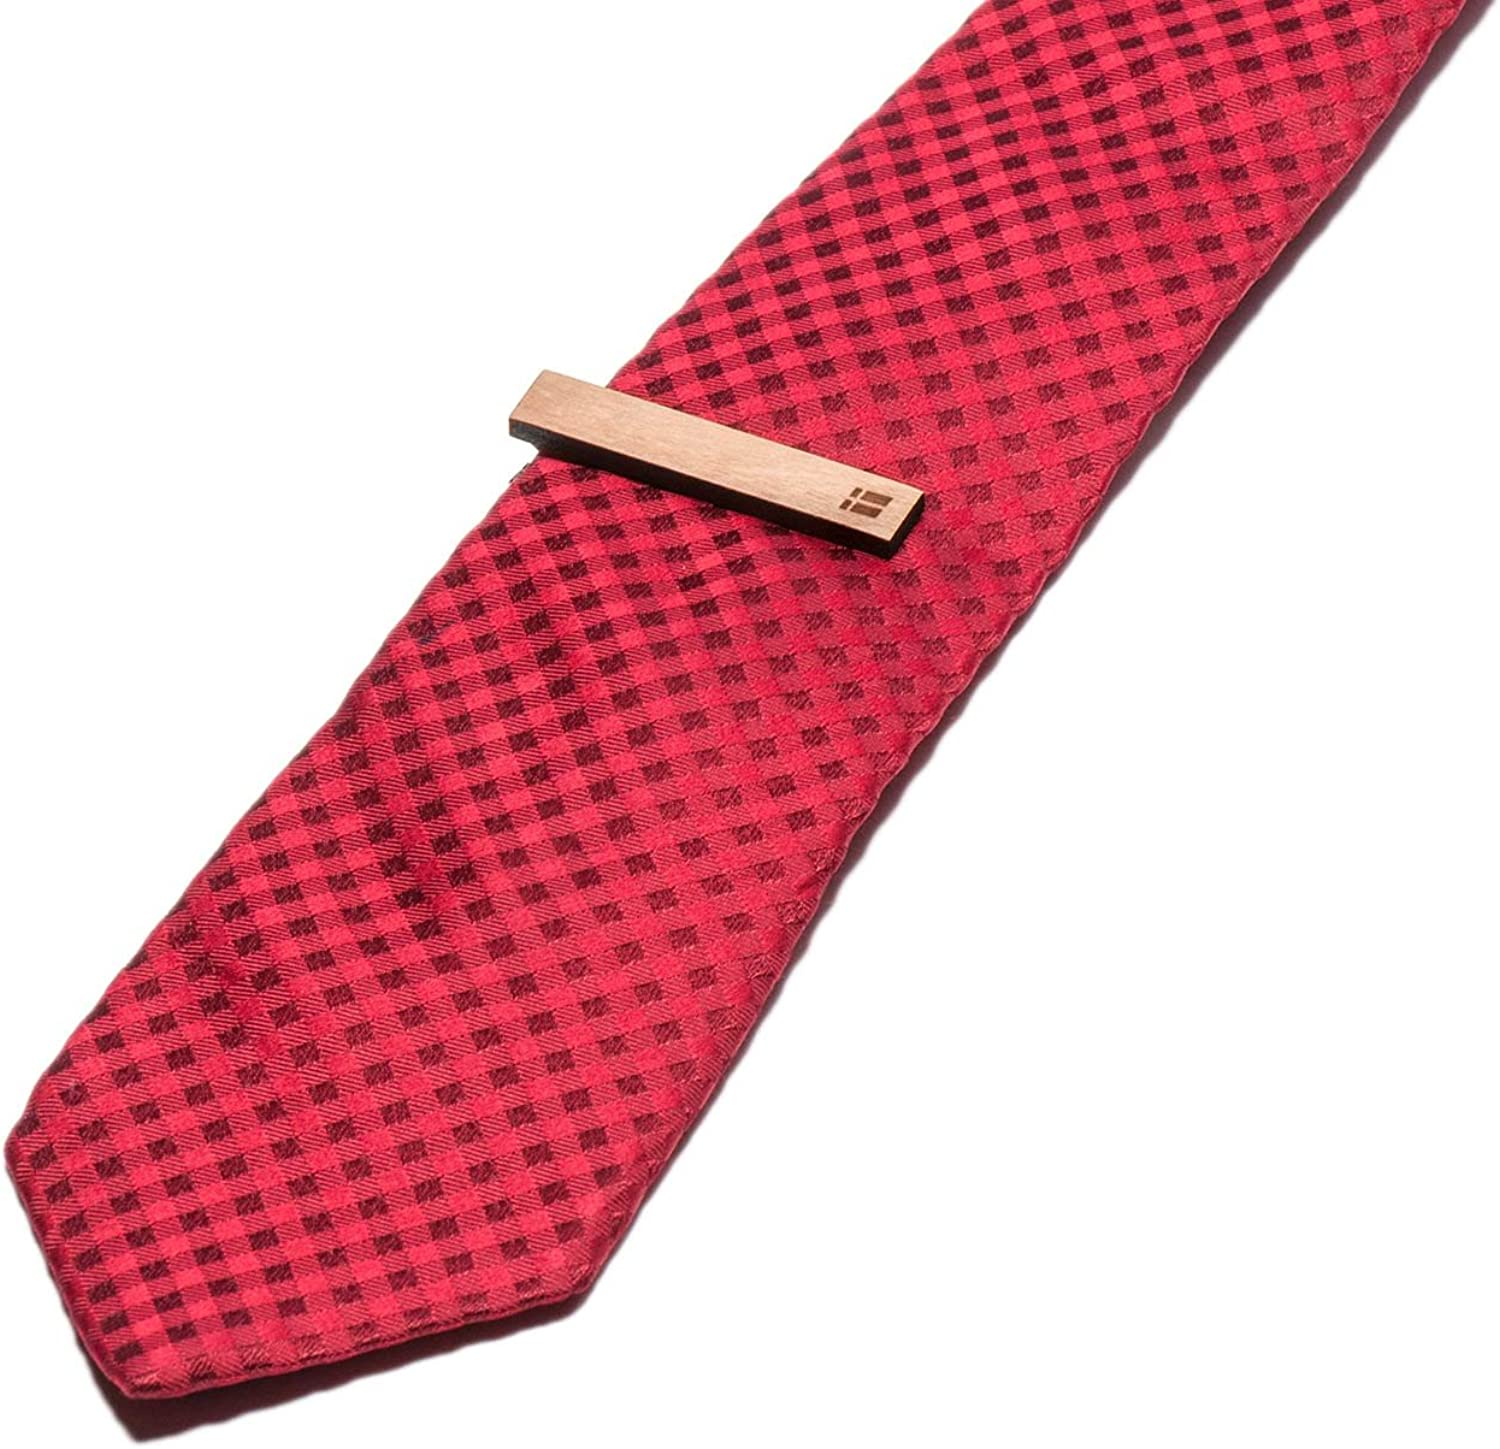 Wooden Accessories Company Wooden Tie Clips with Laser Engraved Sweden Flag Design Cherry Wood Tie Bar Engraved in The USA